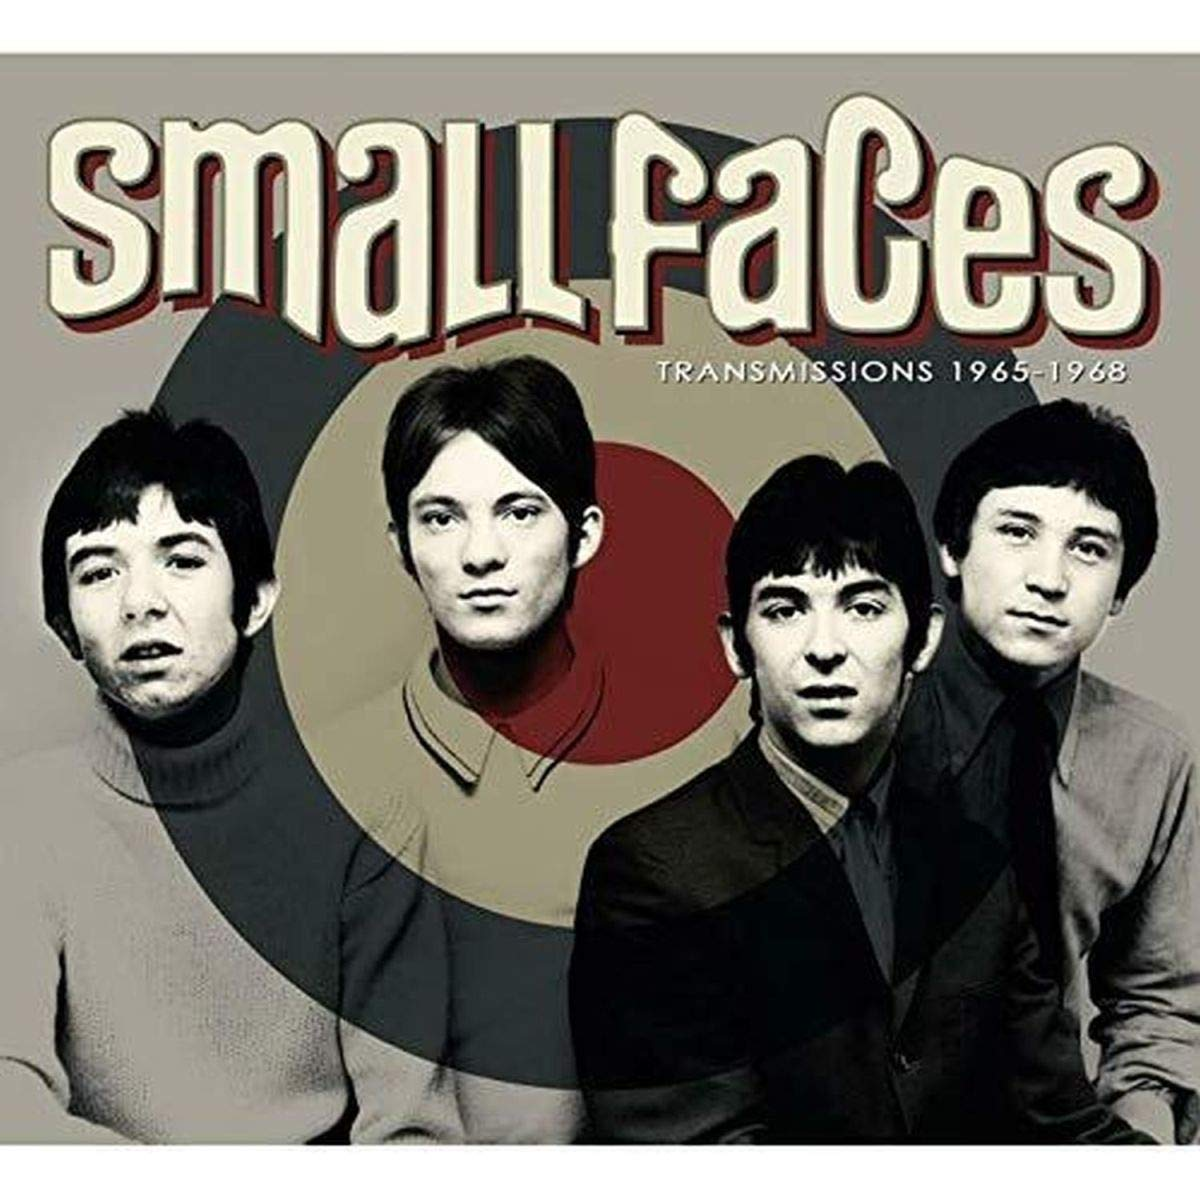 My Collections: Small Faces